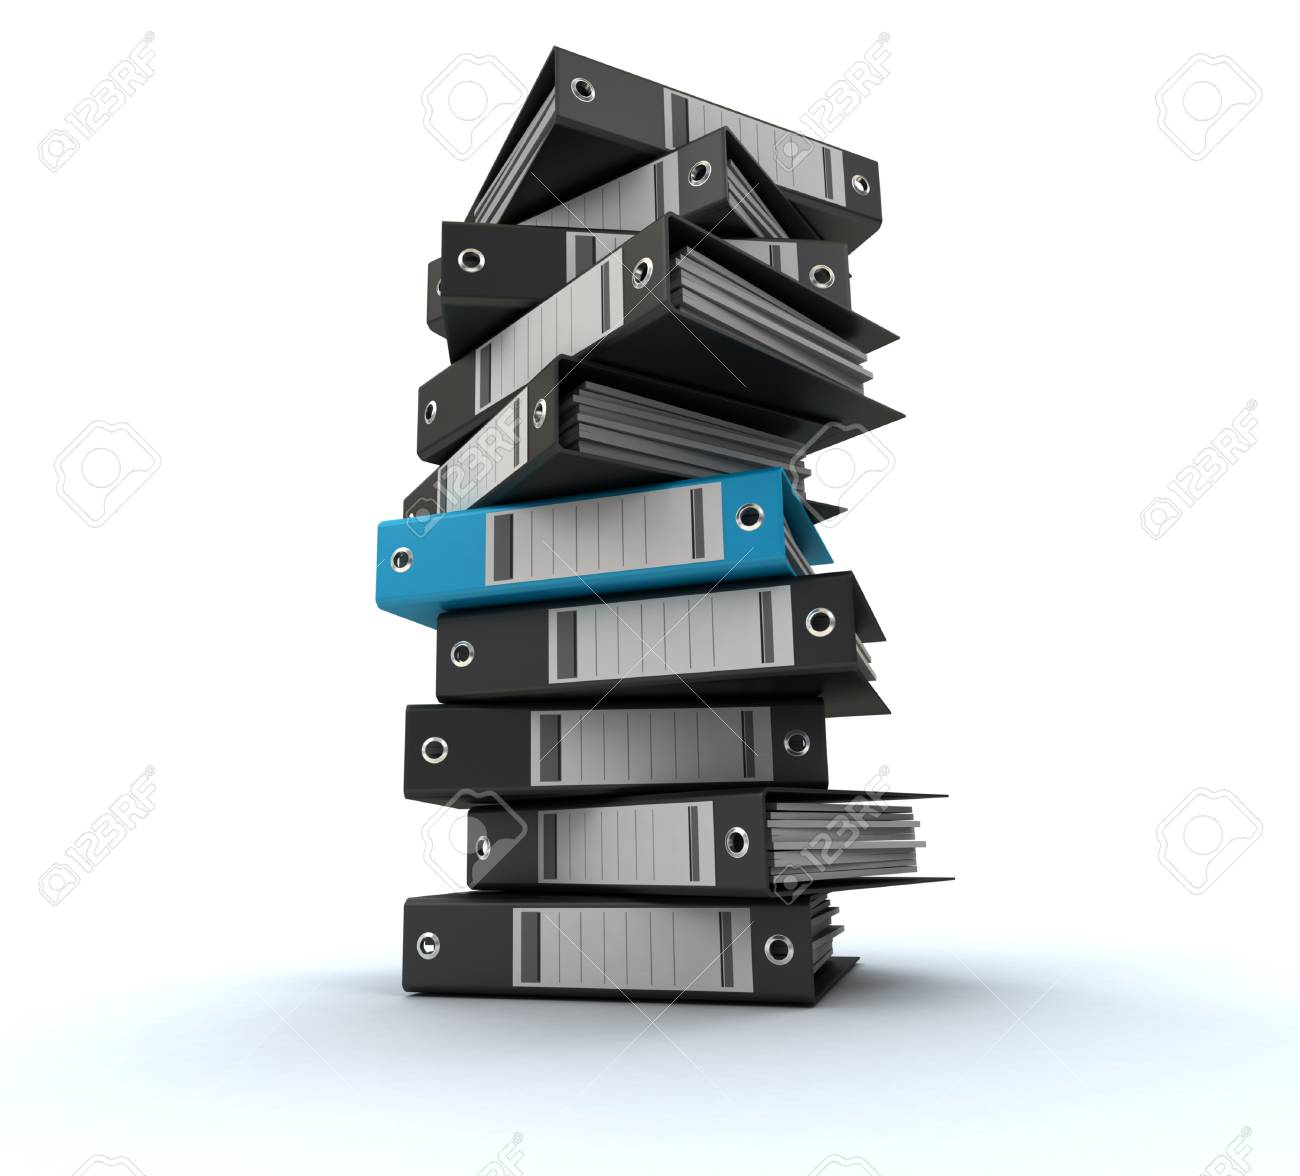 3D rendering of a pile of office ring binders Stock Photo - 14594998